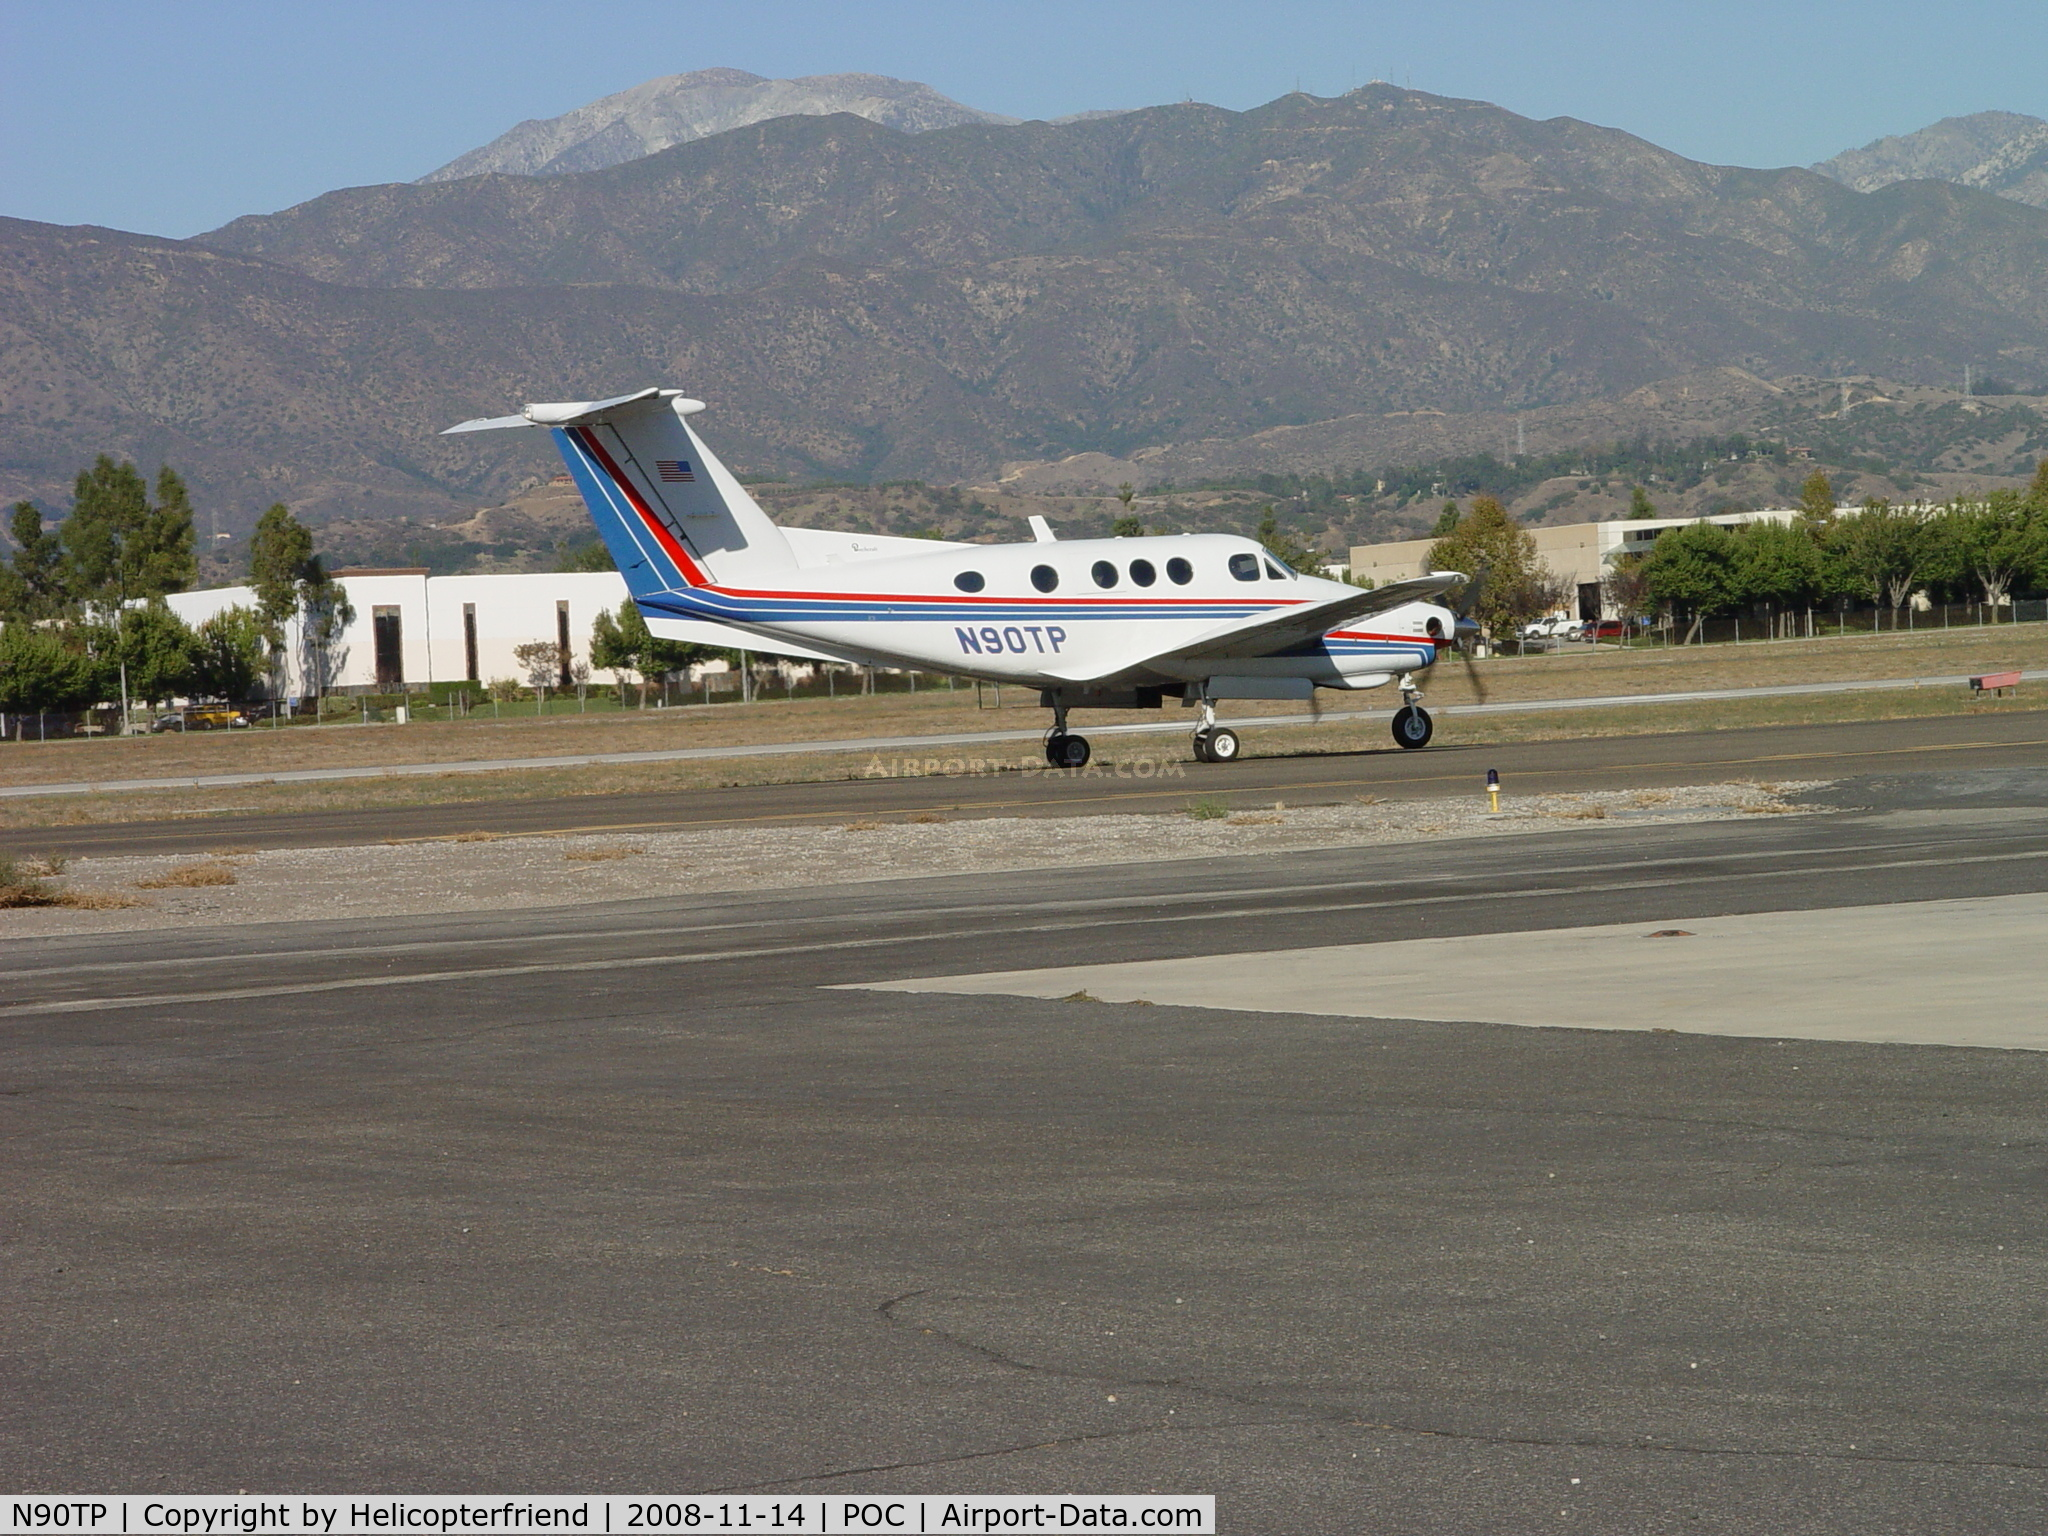 N90TP, 1980 Beech F90 King Air C/N LA-66, Approaching warm-up area before take off